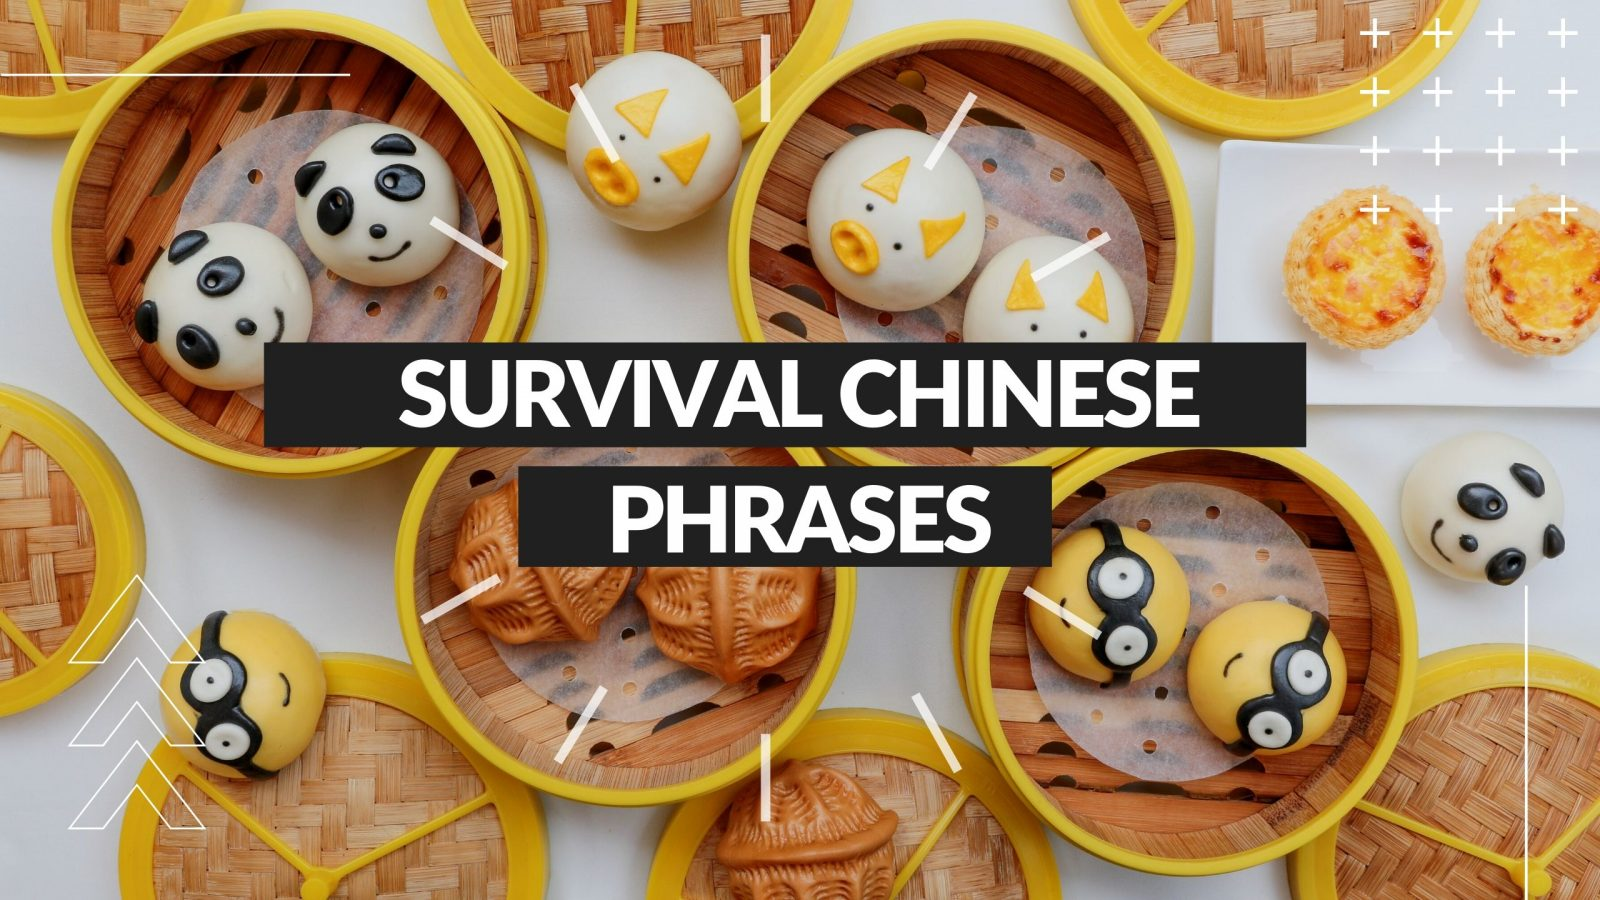 Copy of Survival Chinese phrases